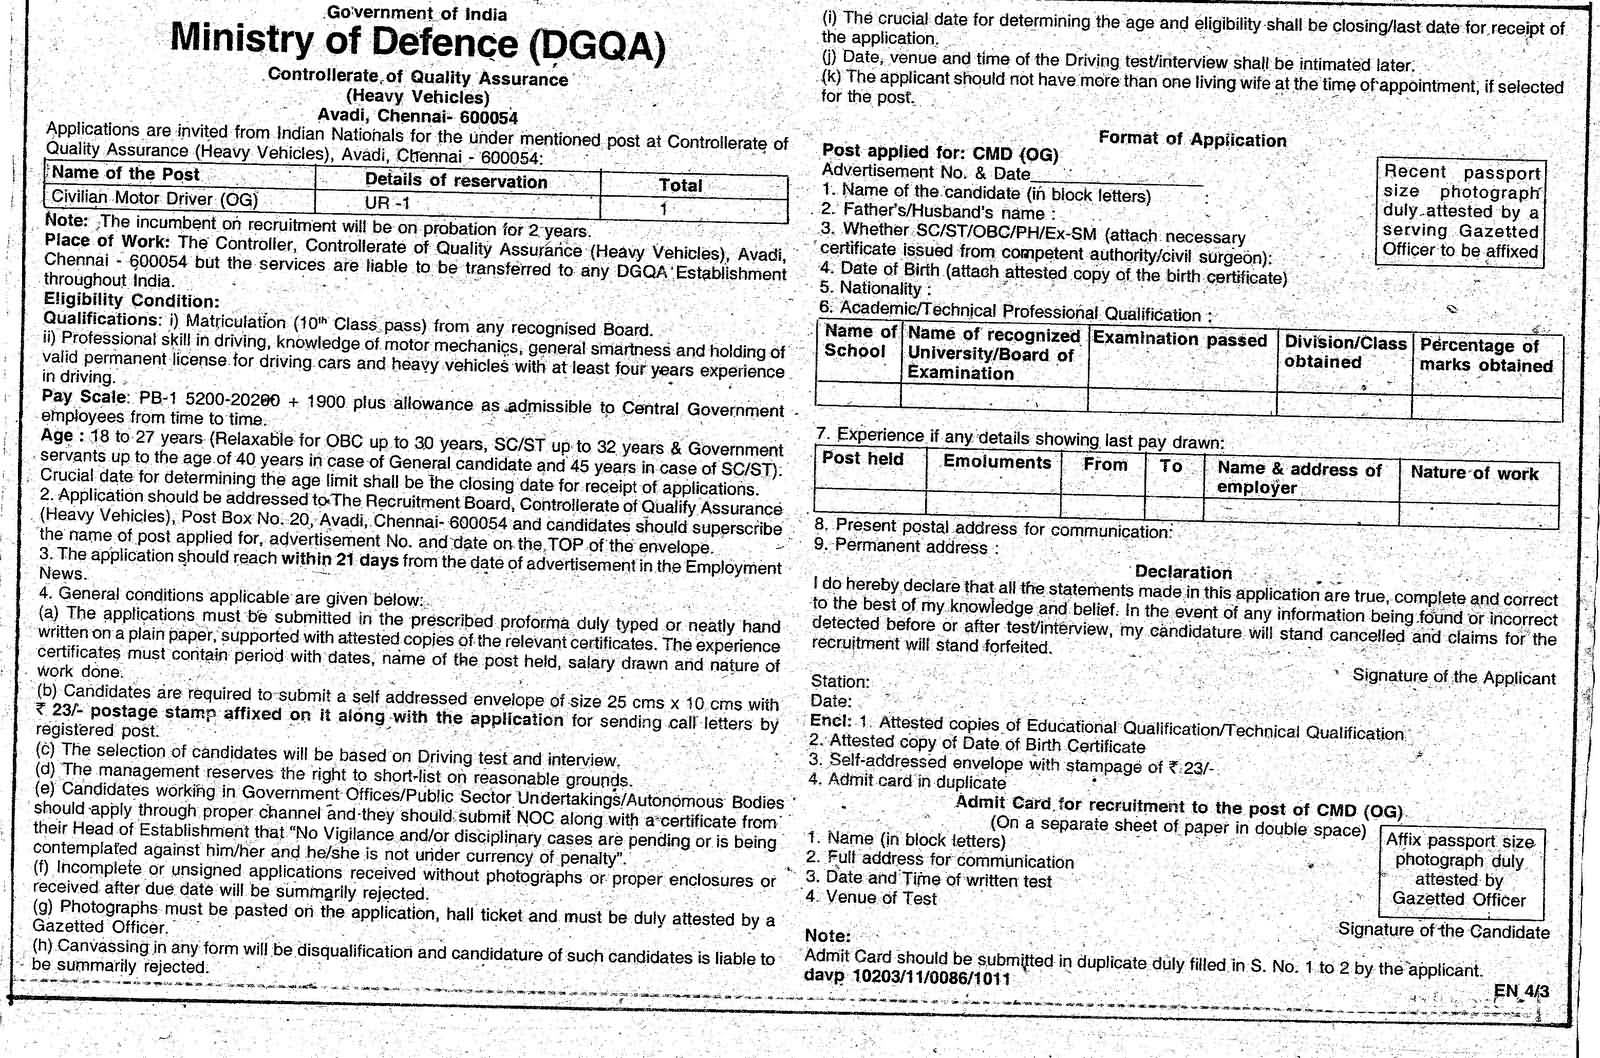 DGQA-recruitment 2011